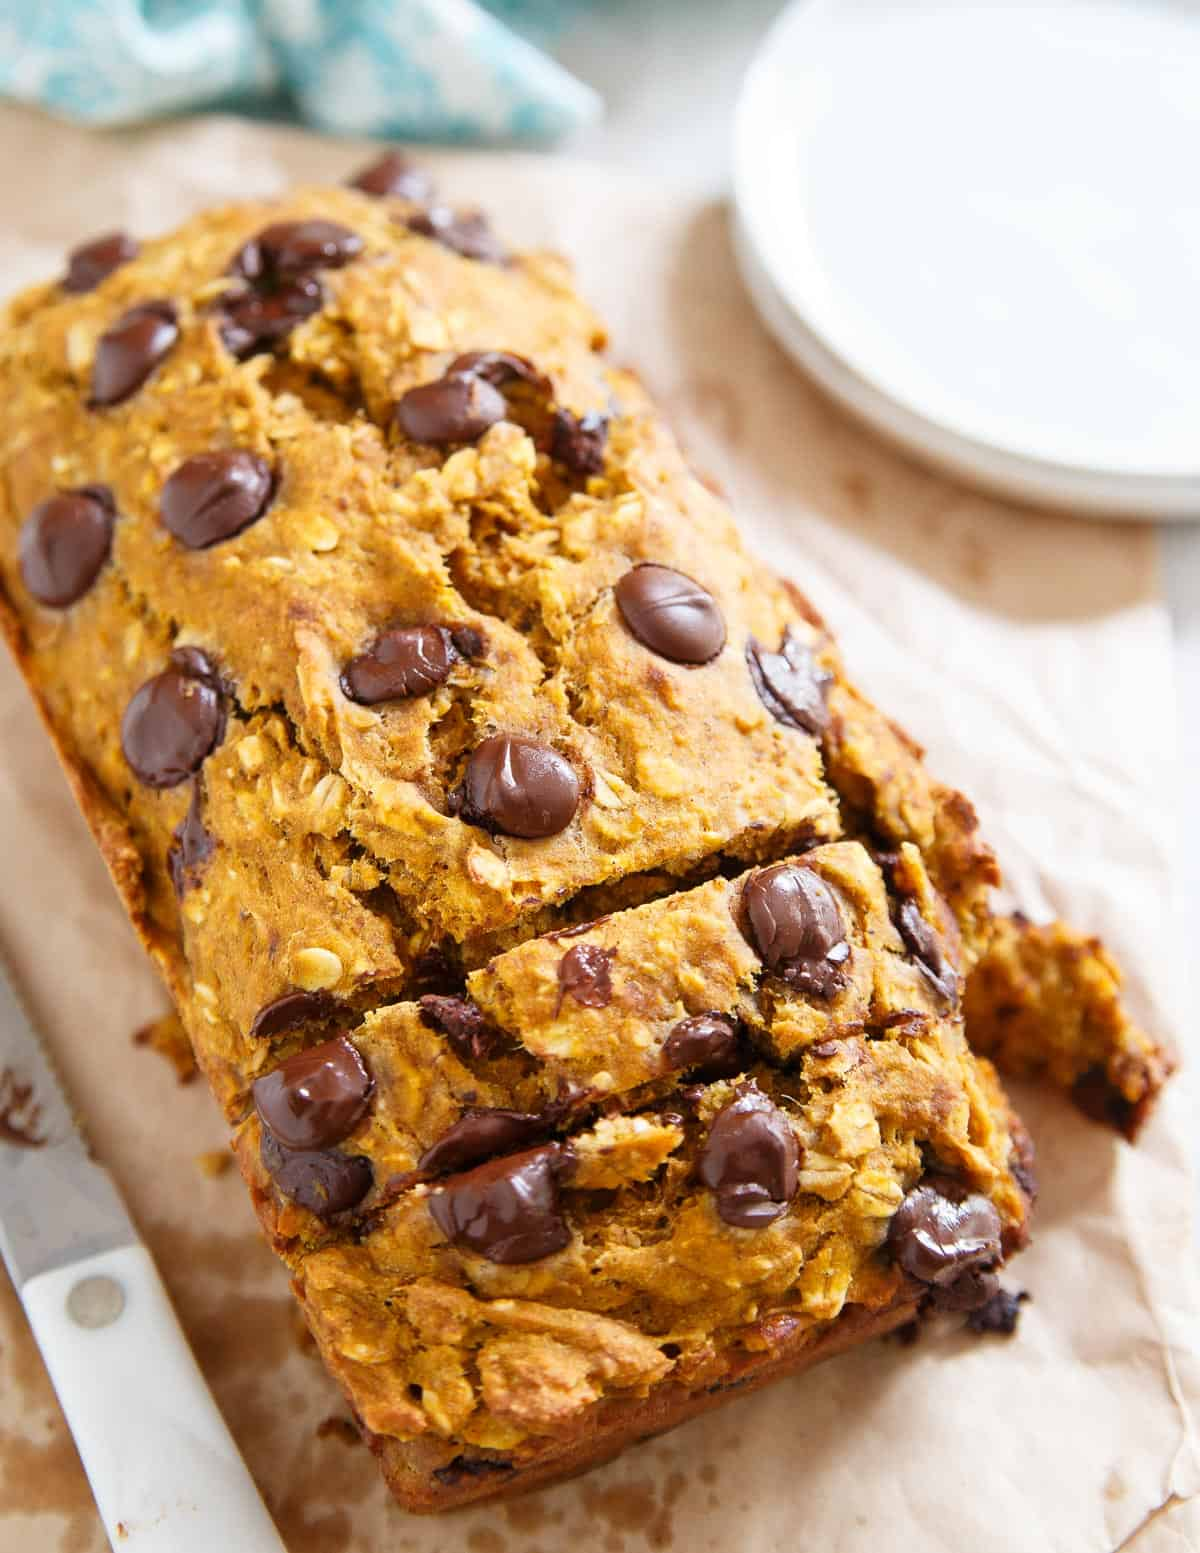 This pumpkin banana chocolate chip bread is a delicious fall treat sweet enough to be dessert and light enough to be breakfast. The perfect fall treat!